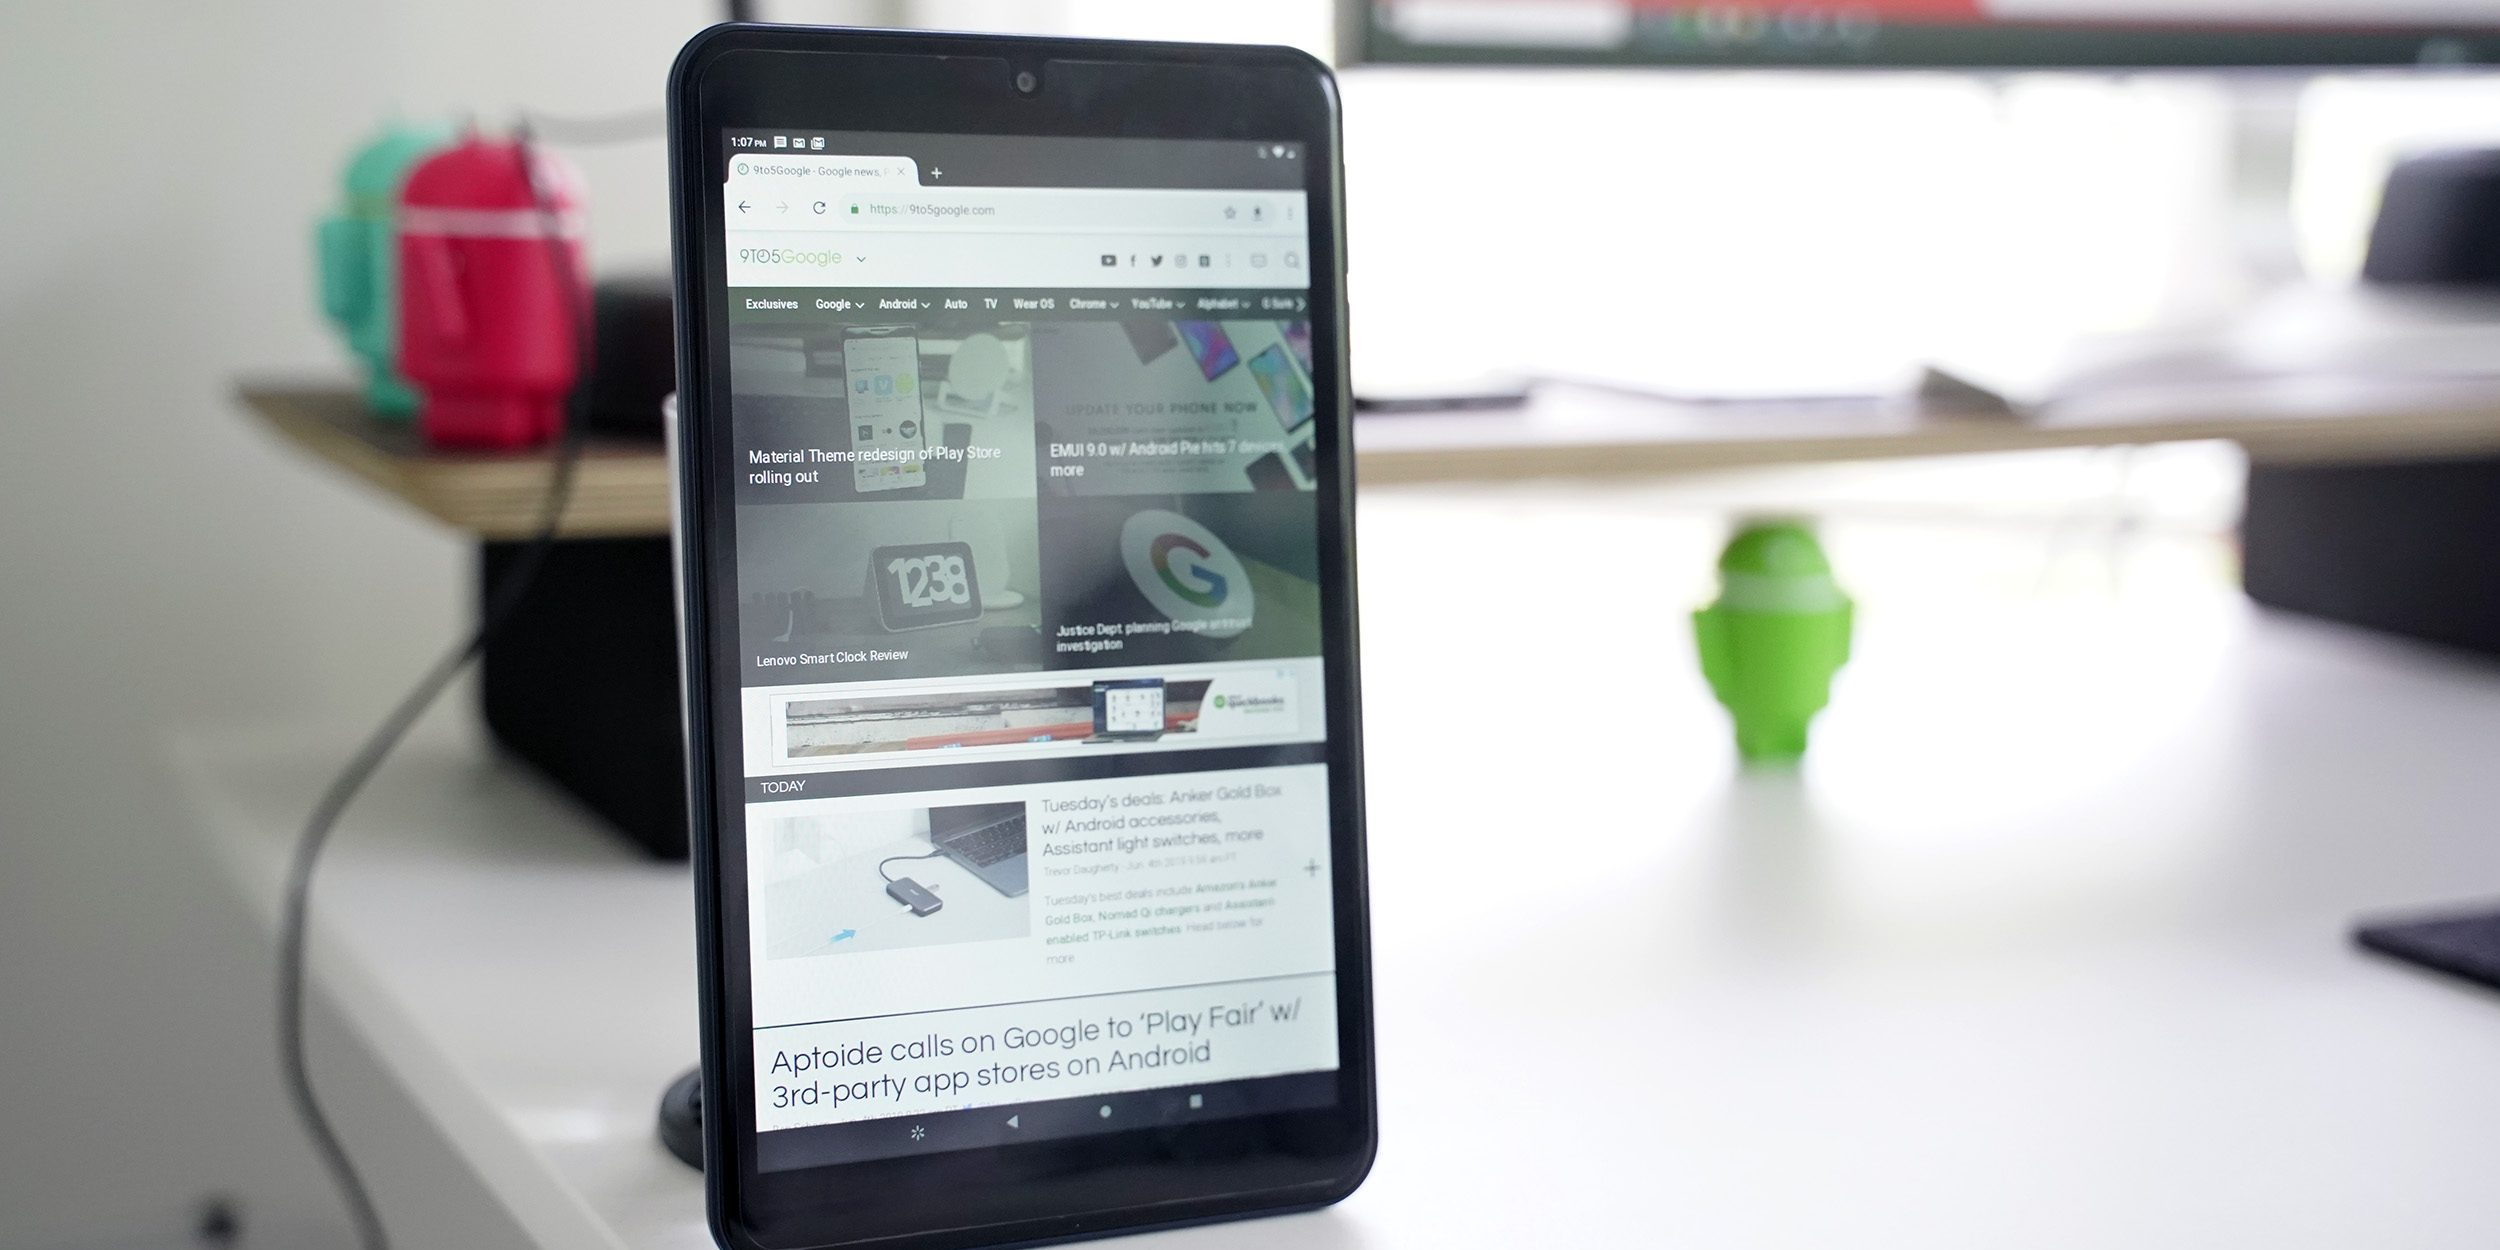 Google says there are 175M Android tablets with Play Store